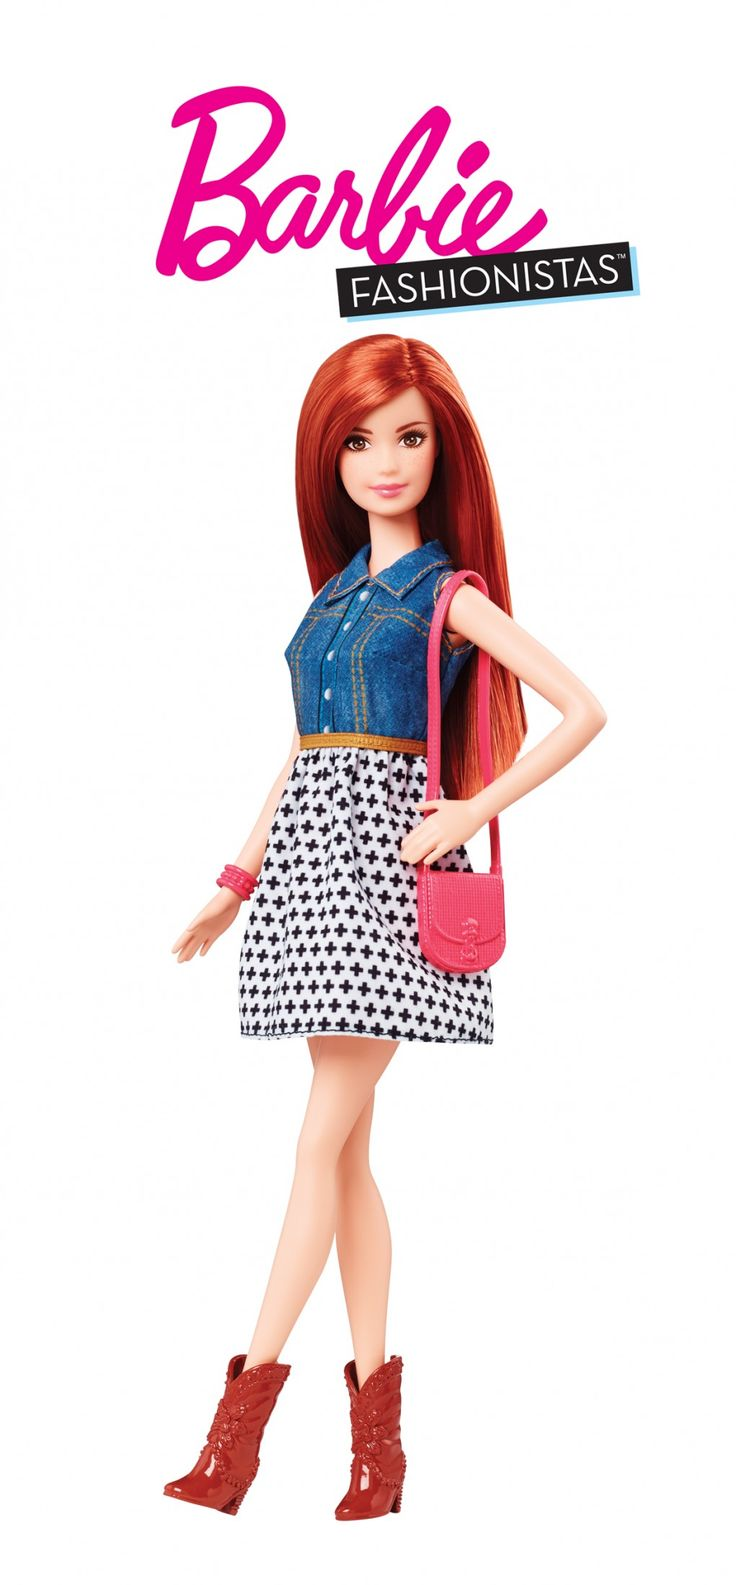 Wow this Barbie so cute and pretty. Barbie Fashionista dolls have so many varieties.  There's even one with freckles! [ad] #barbie #BarbieDoll #fashionista #Girlsdoll